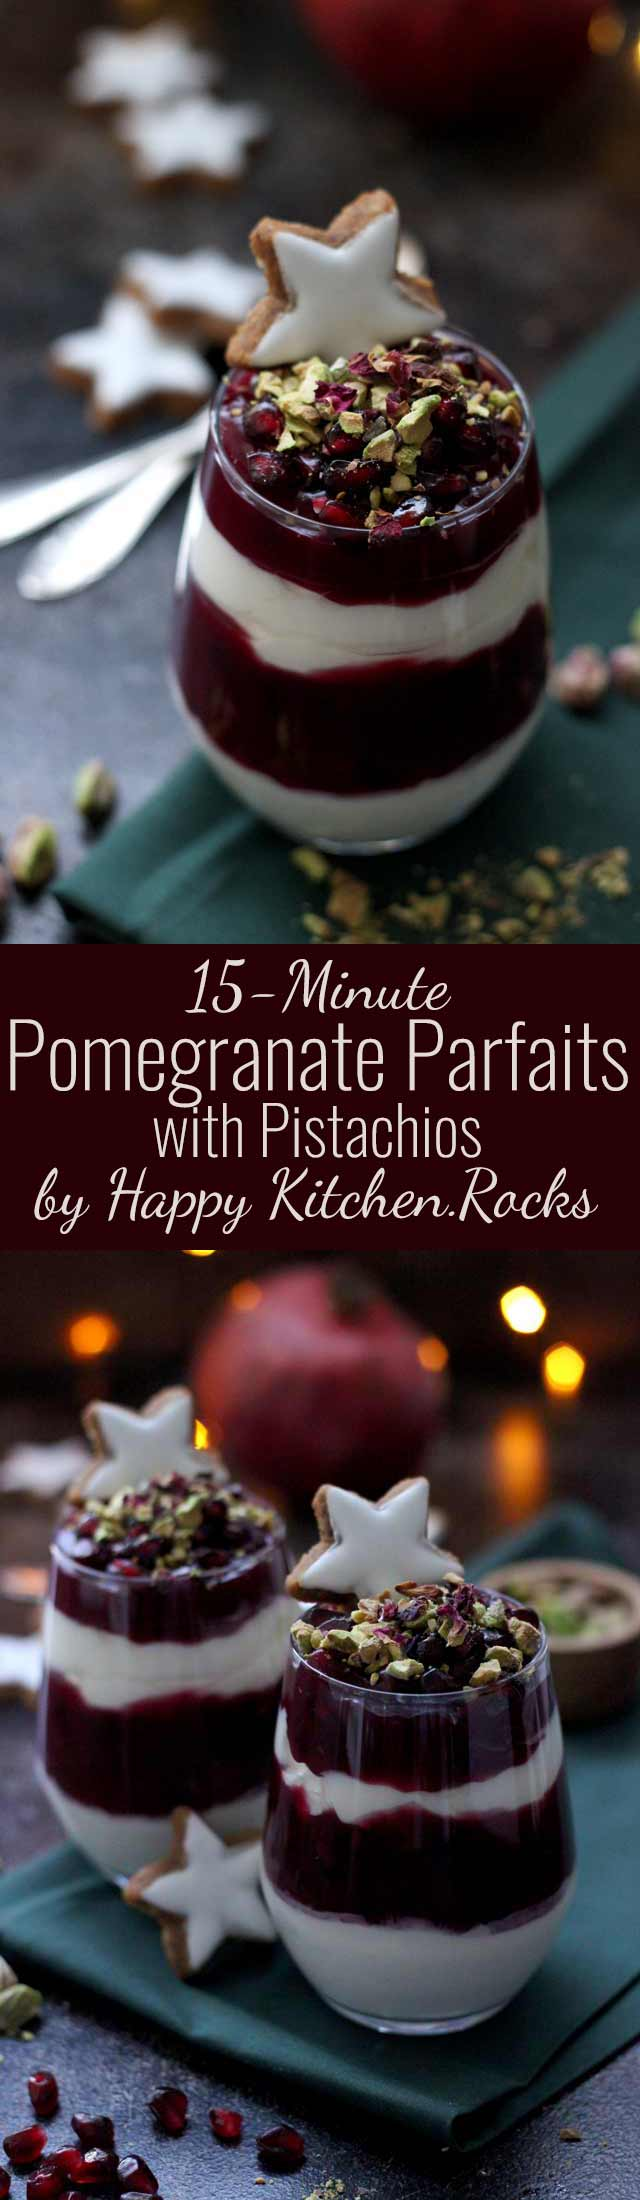 15-Minute Pomegranate Parfaits with Pistachios - Super Long Collage of Two Images with Text Overlay